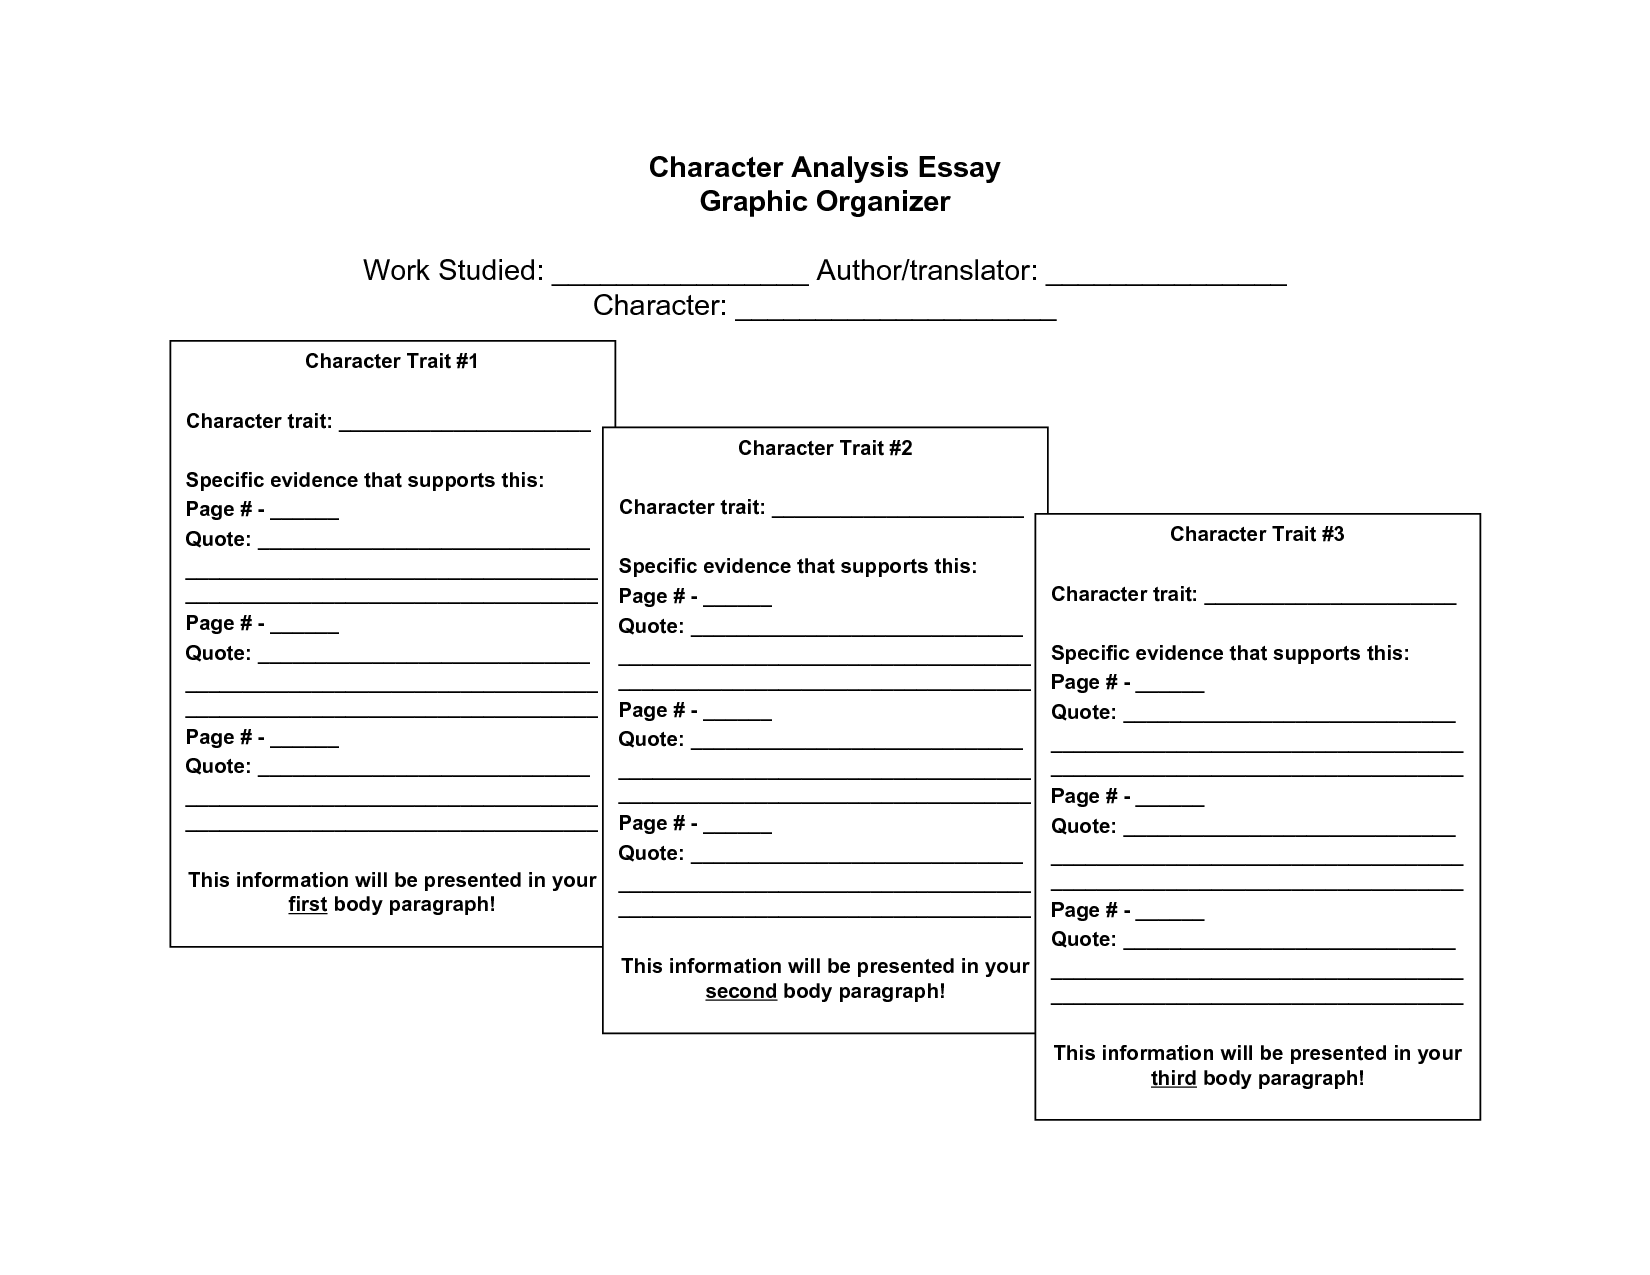 graphic organizers printable prompt paragraph organizer graphic organizers printable character analysis essay graphic organizer